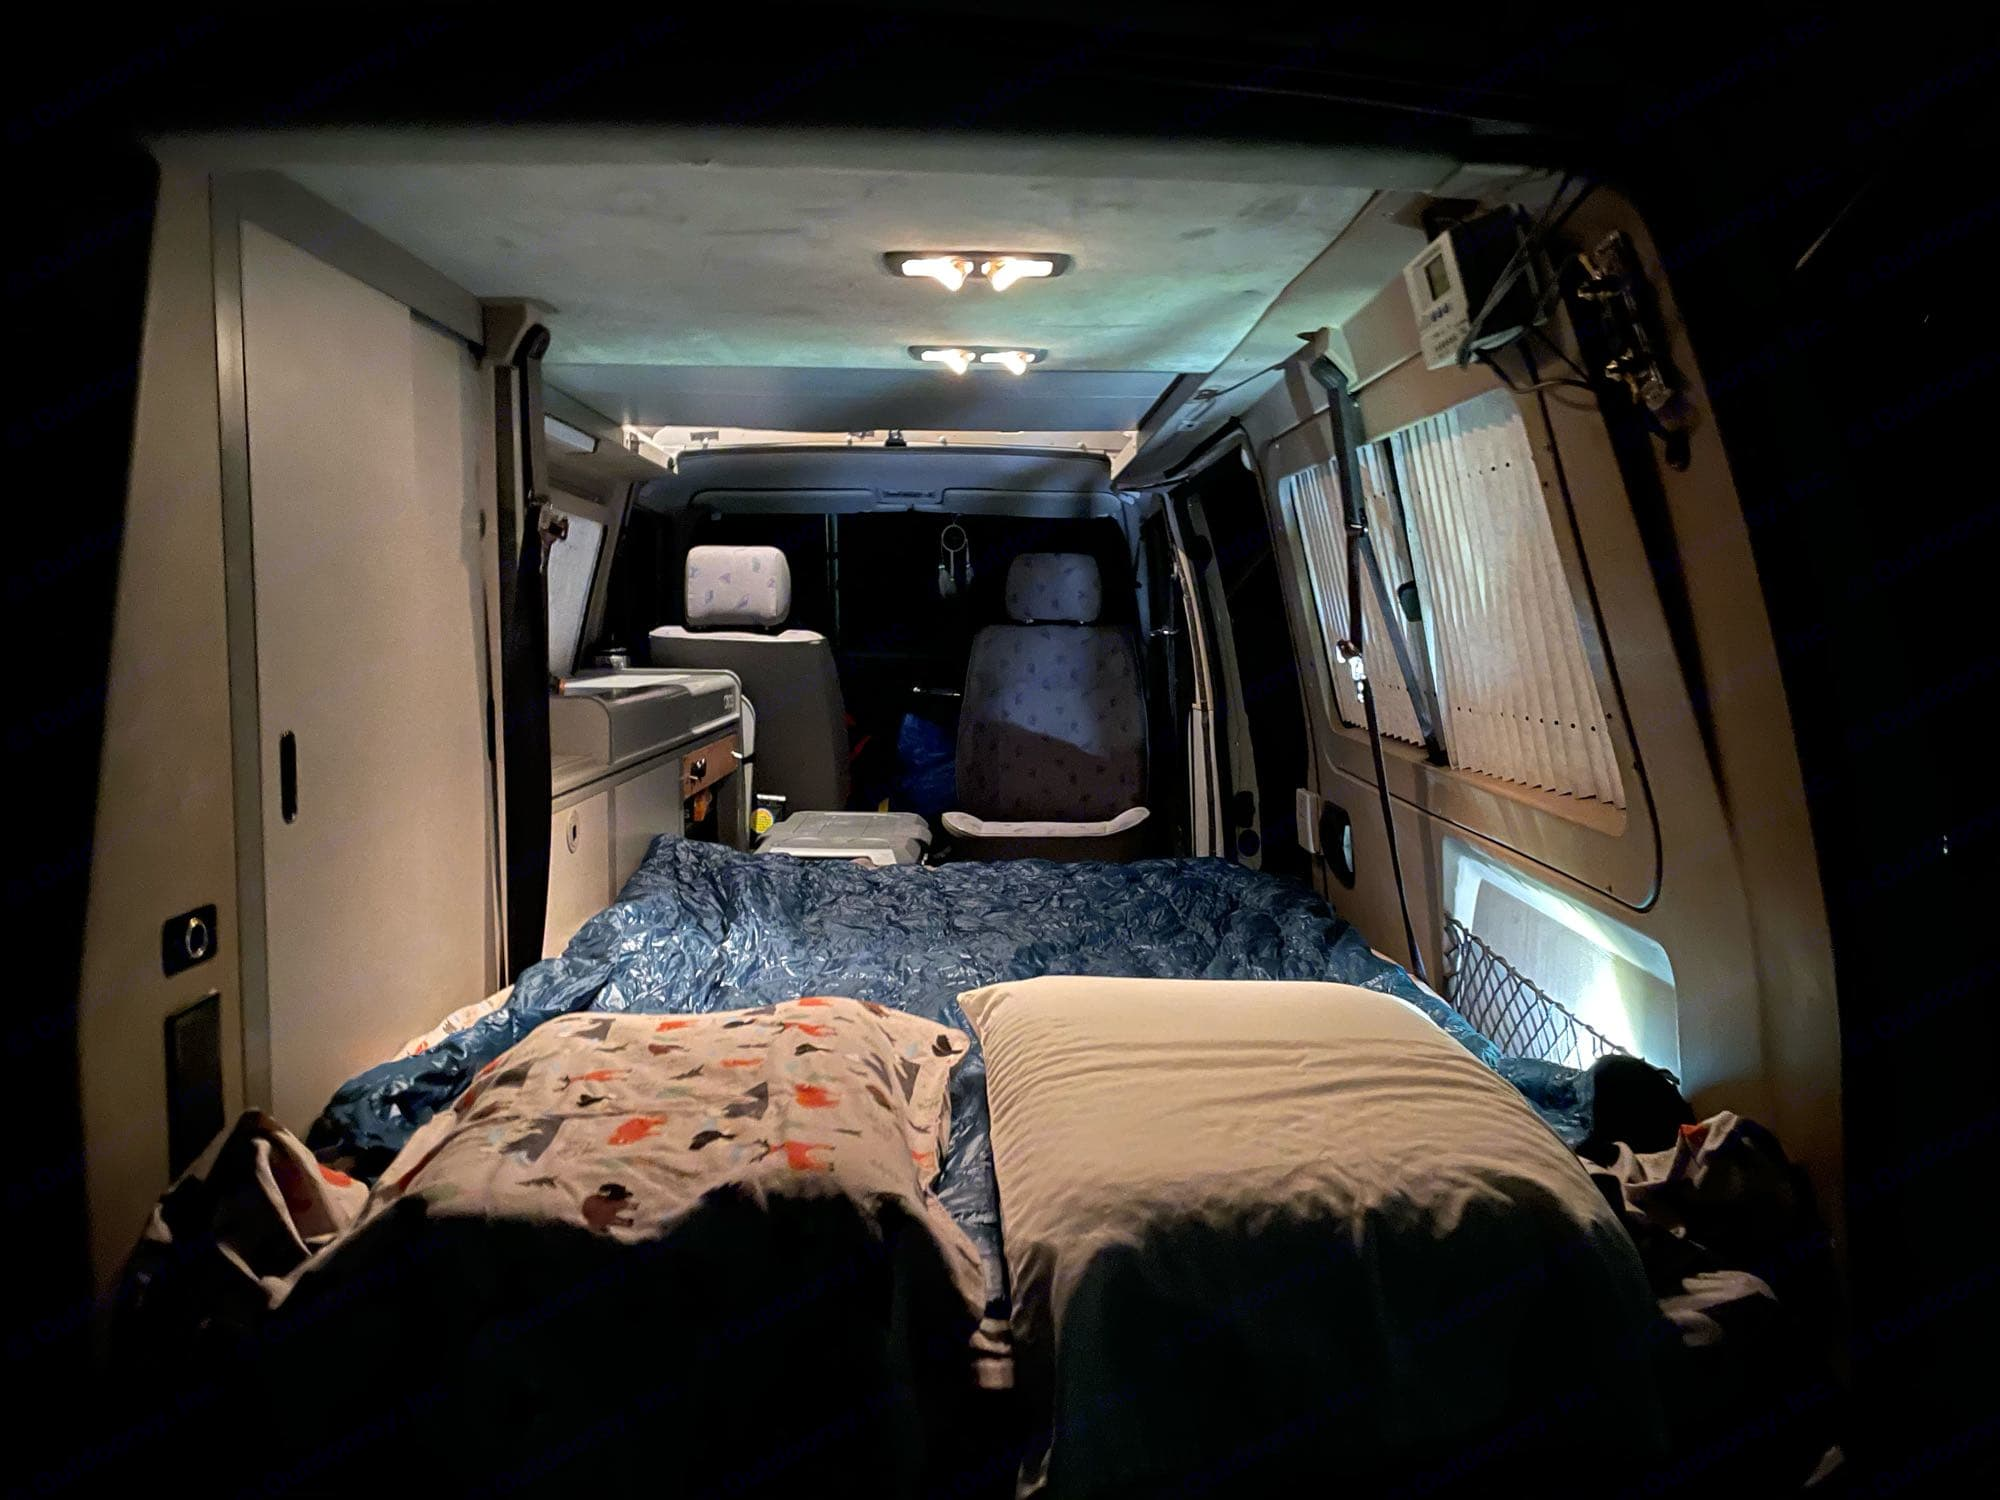 The back seat is folded flat and the topper mattress is laid out for sleeping for two. Bring your own blanket or sleeping bag.. Volkswagen Eurovan Camper 1997